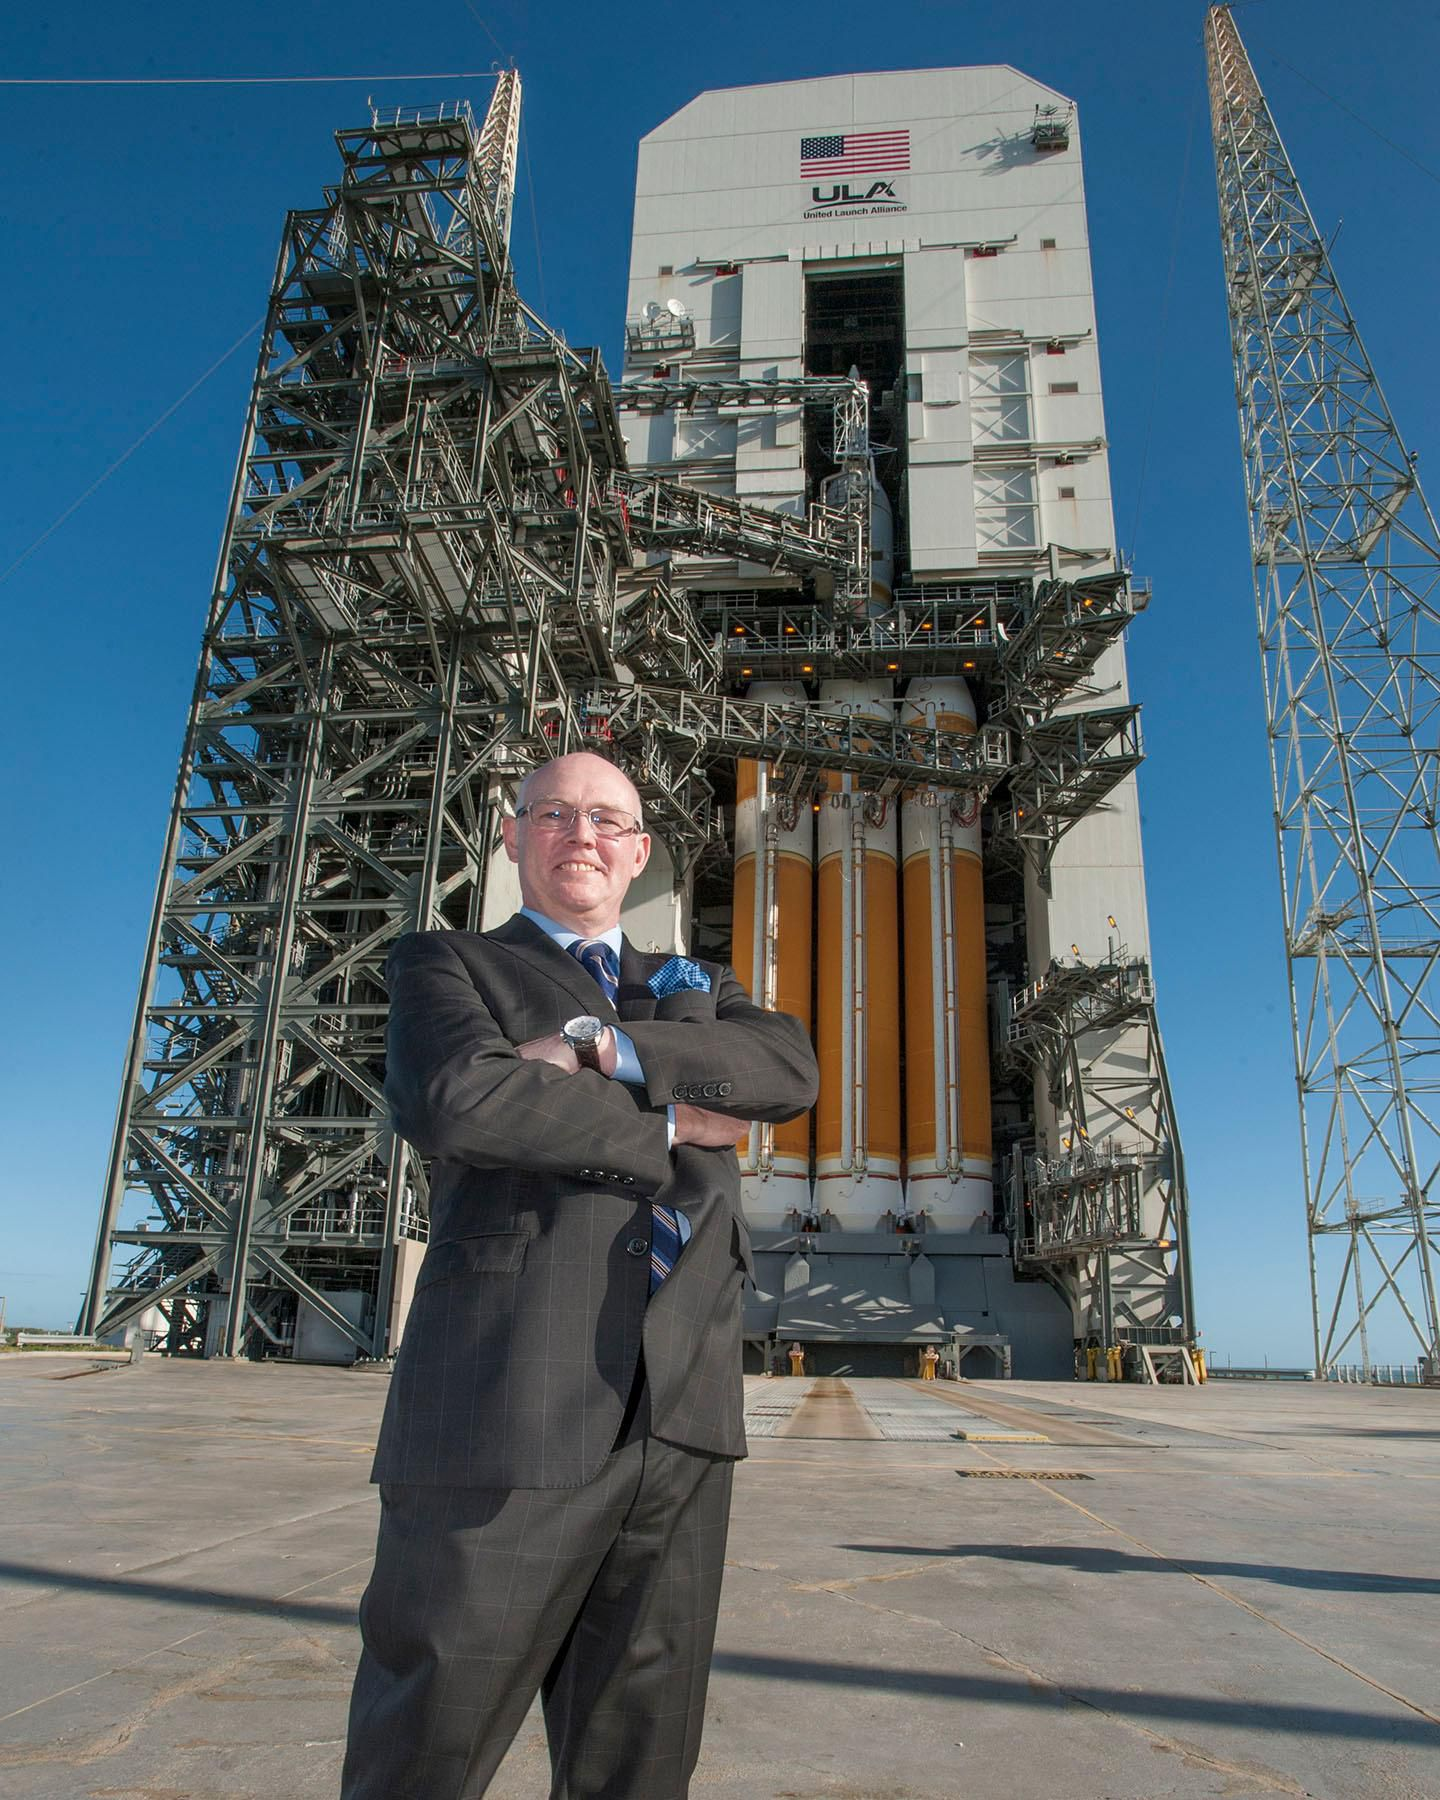 Tory Bruno, the Other Rocket Man | Space | Air & Space Magazine